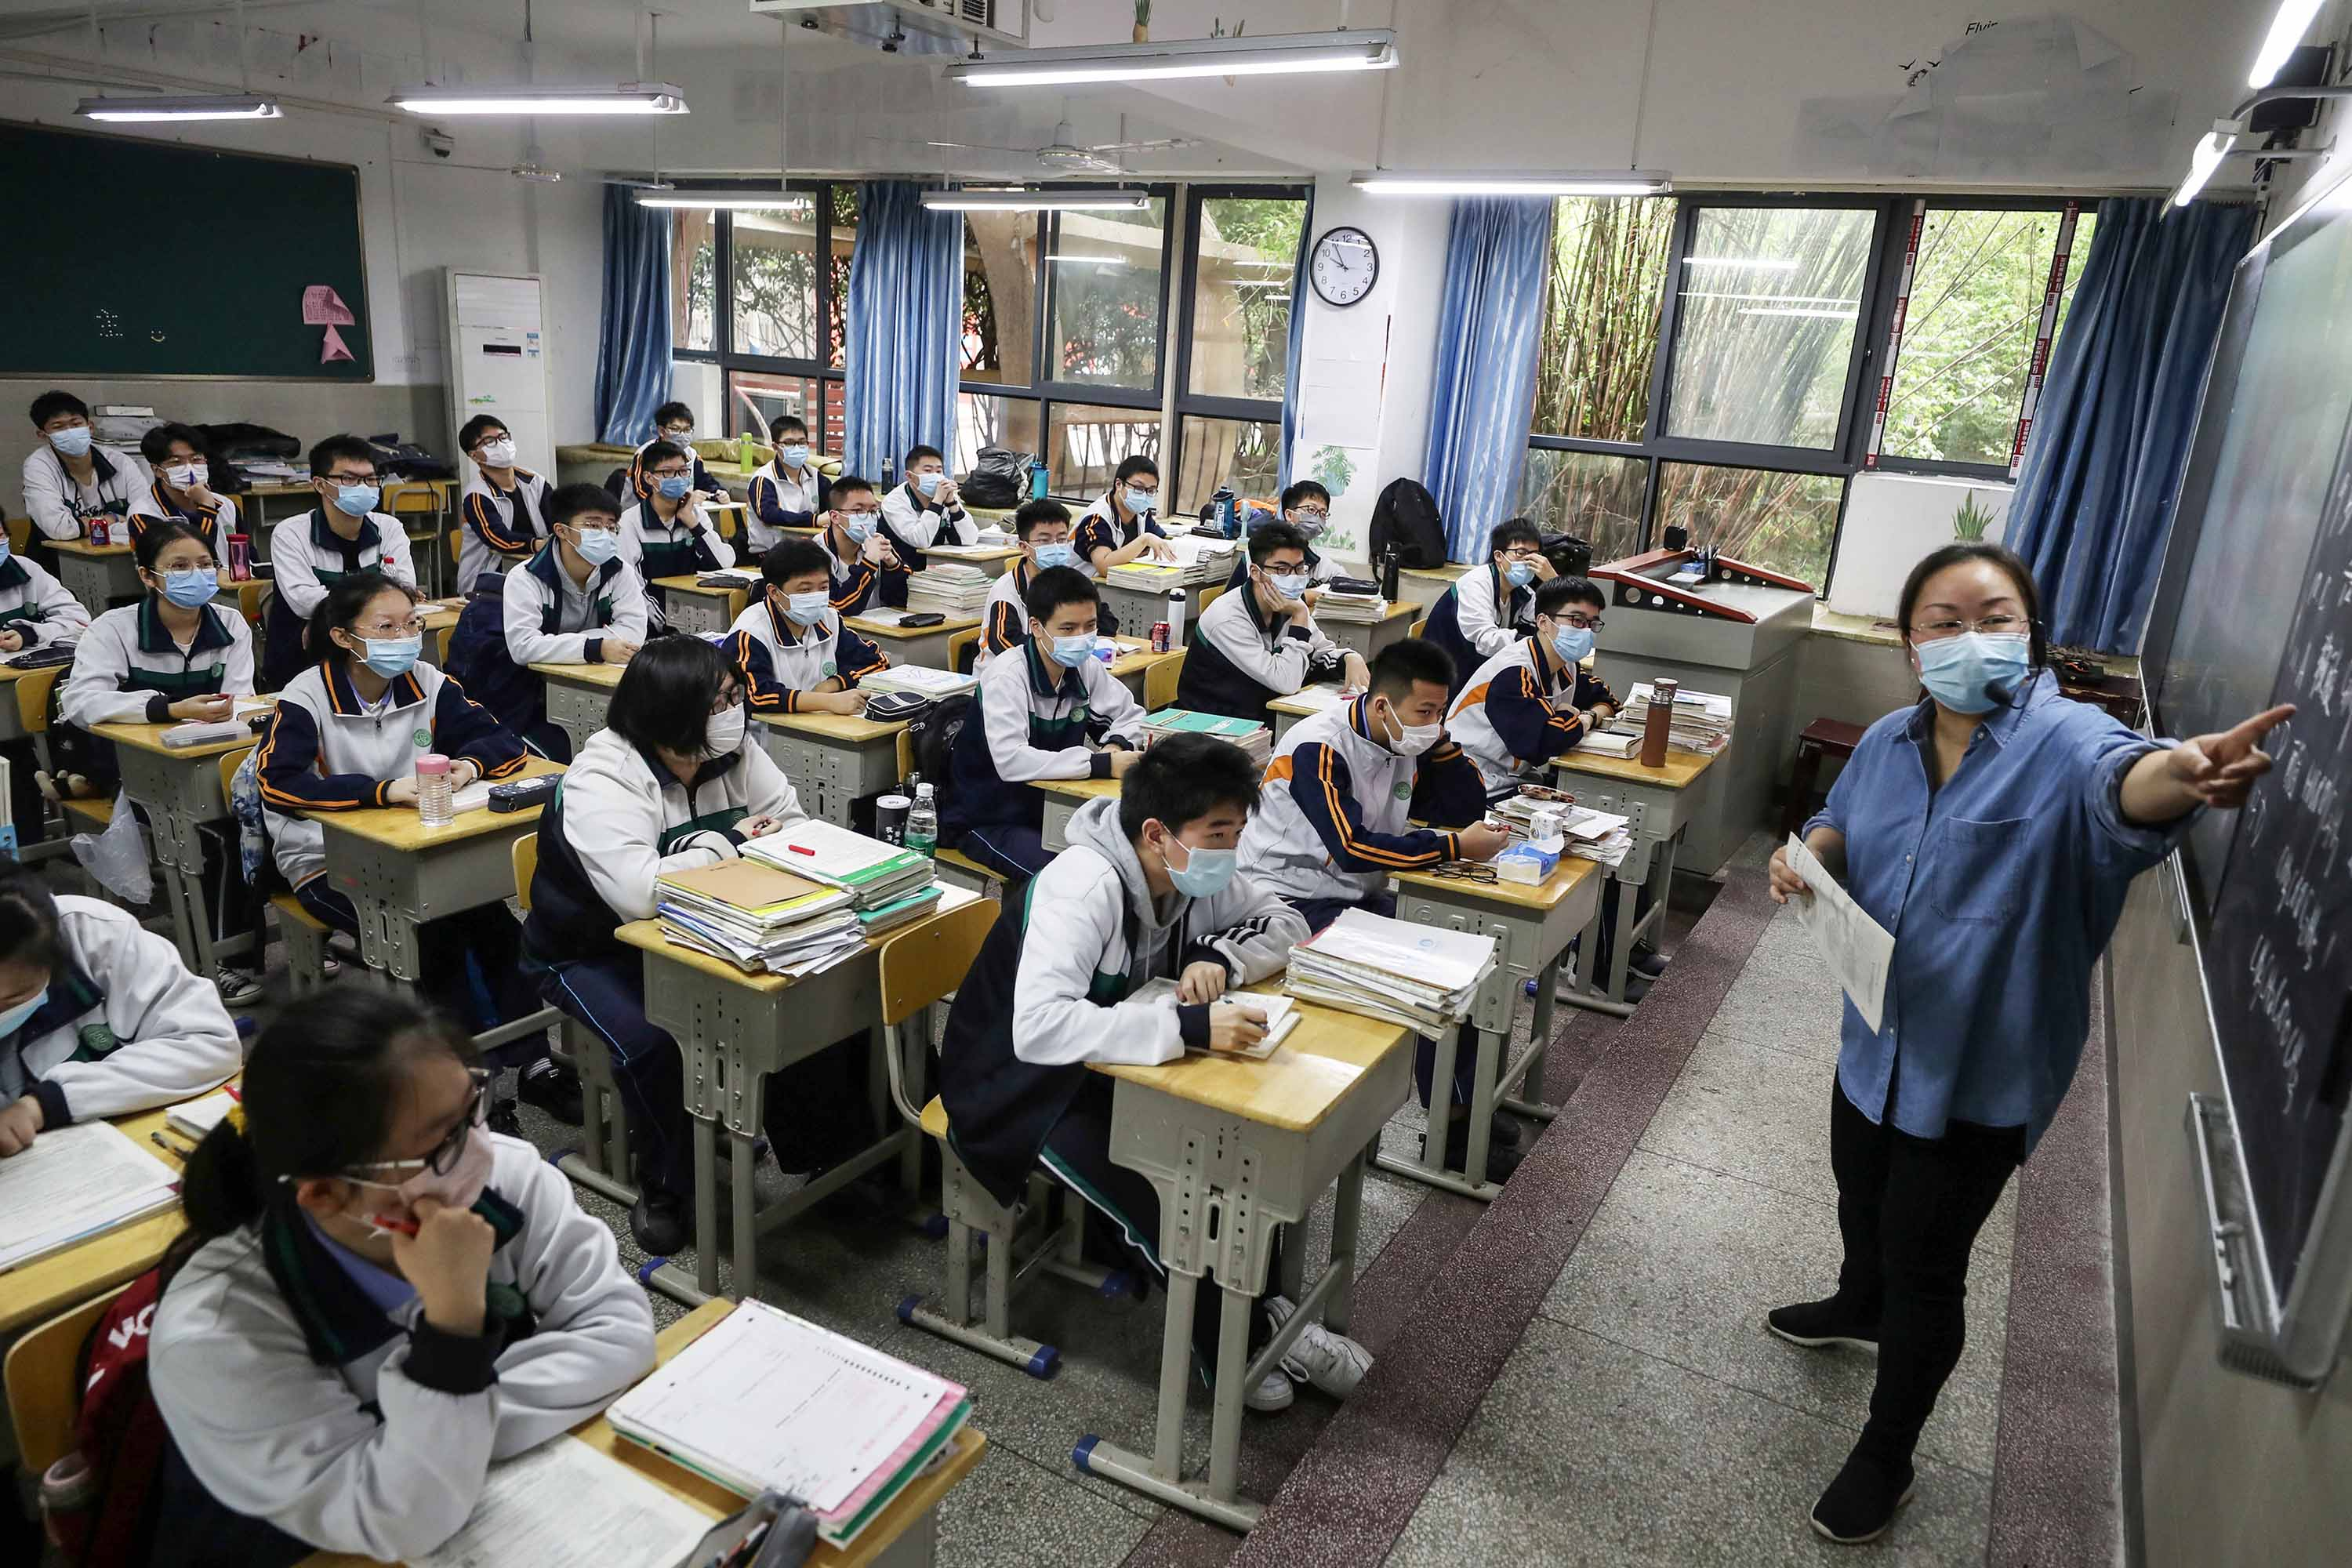 High school senior students study in a classroom in Wuhan on May 6, for the first time since their city shut down  in January.